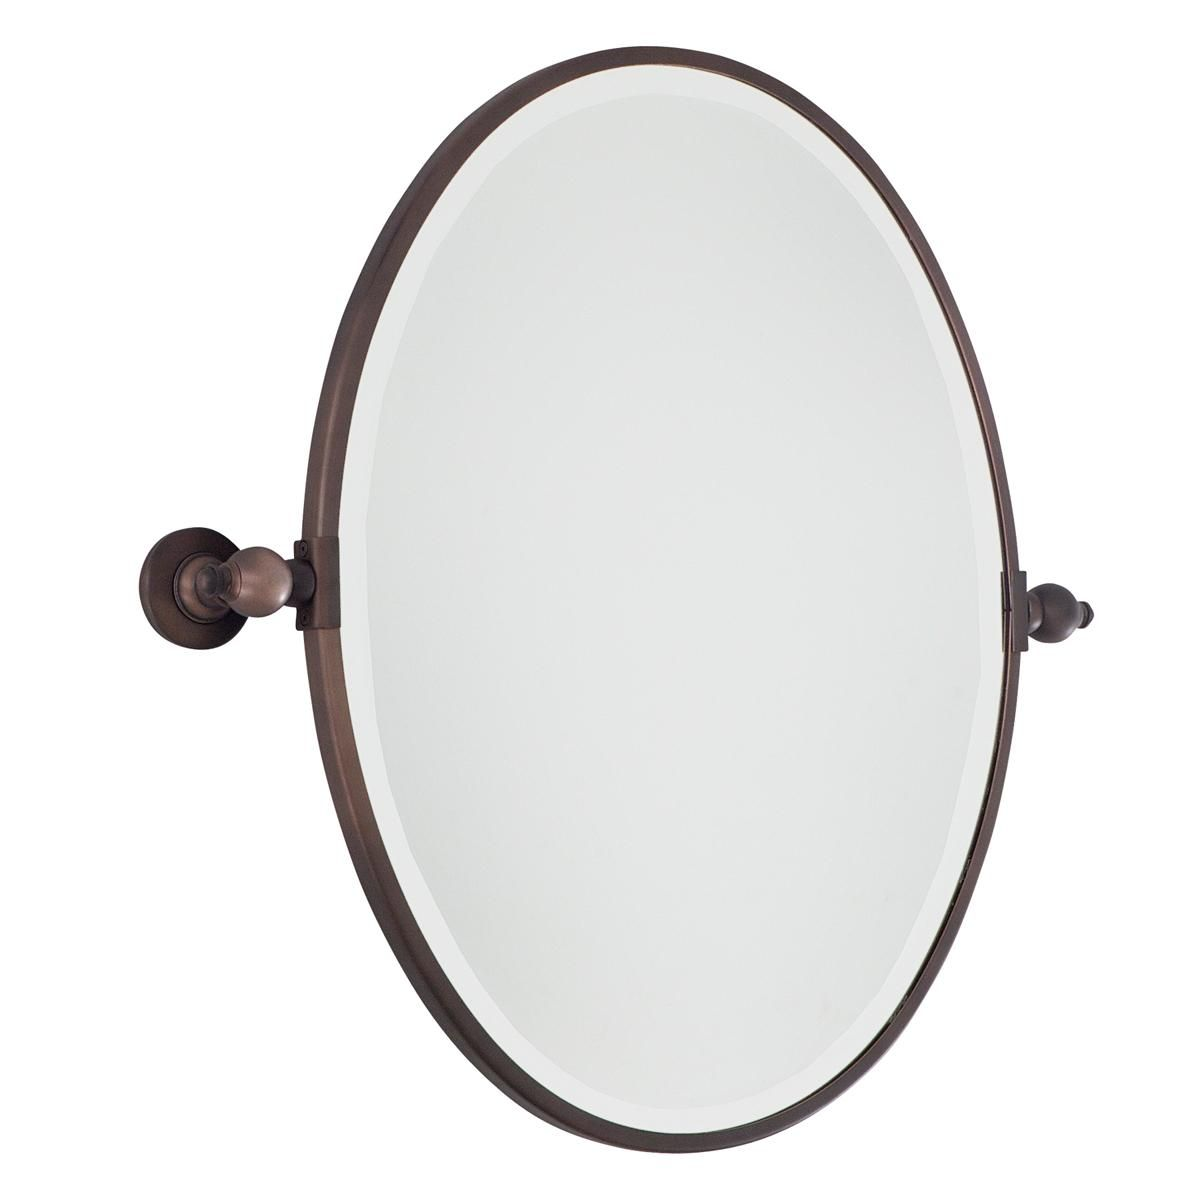 Oval Tilt Bathroom Mirror 2 Finishes With Images Mirror